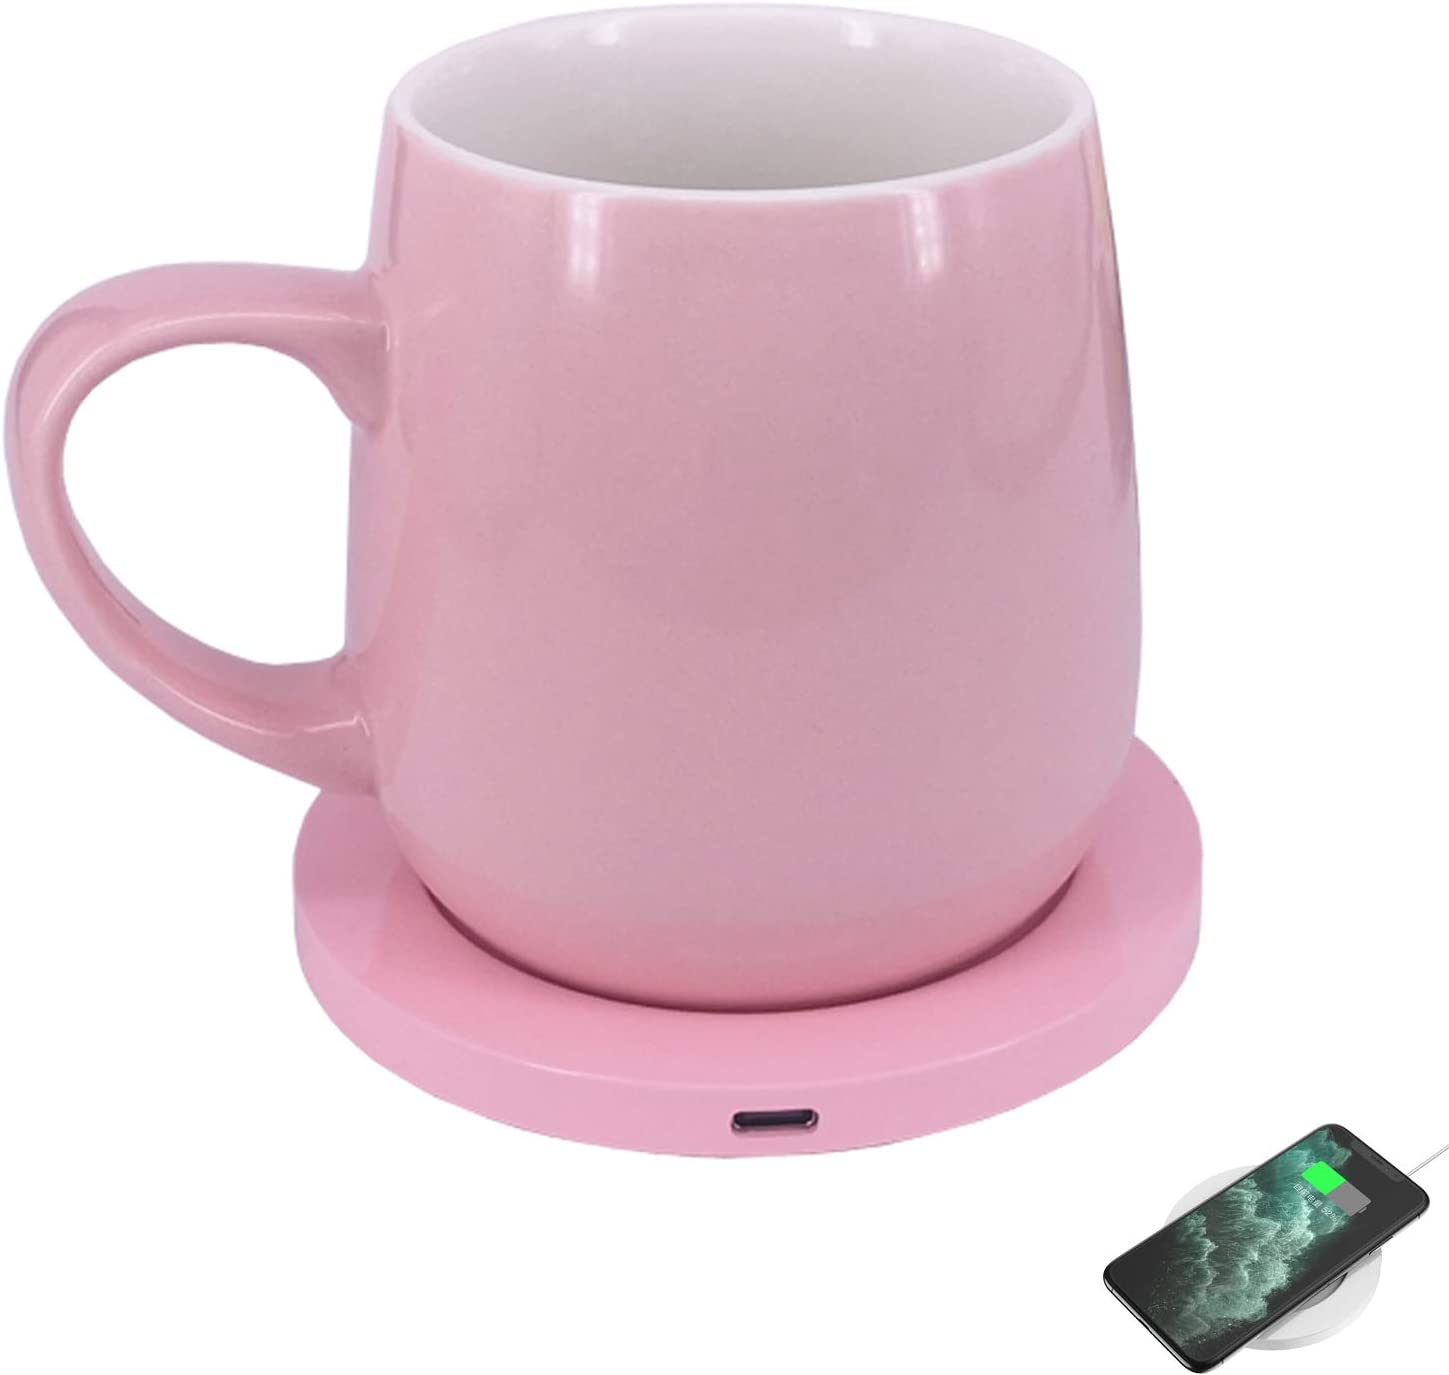 Wired coffee cup warmer with wireless charging coaster keep coffee milk tea warm for home and office use (Pink)